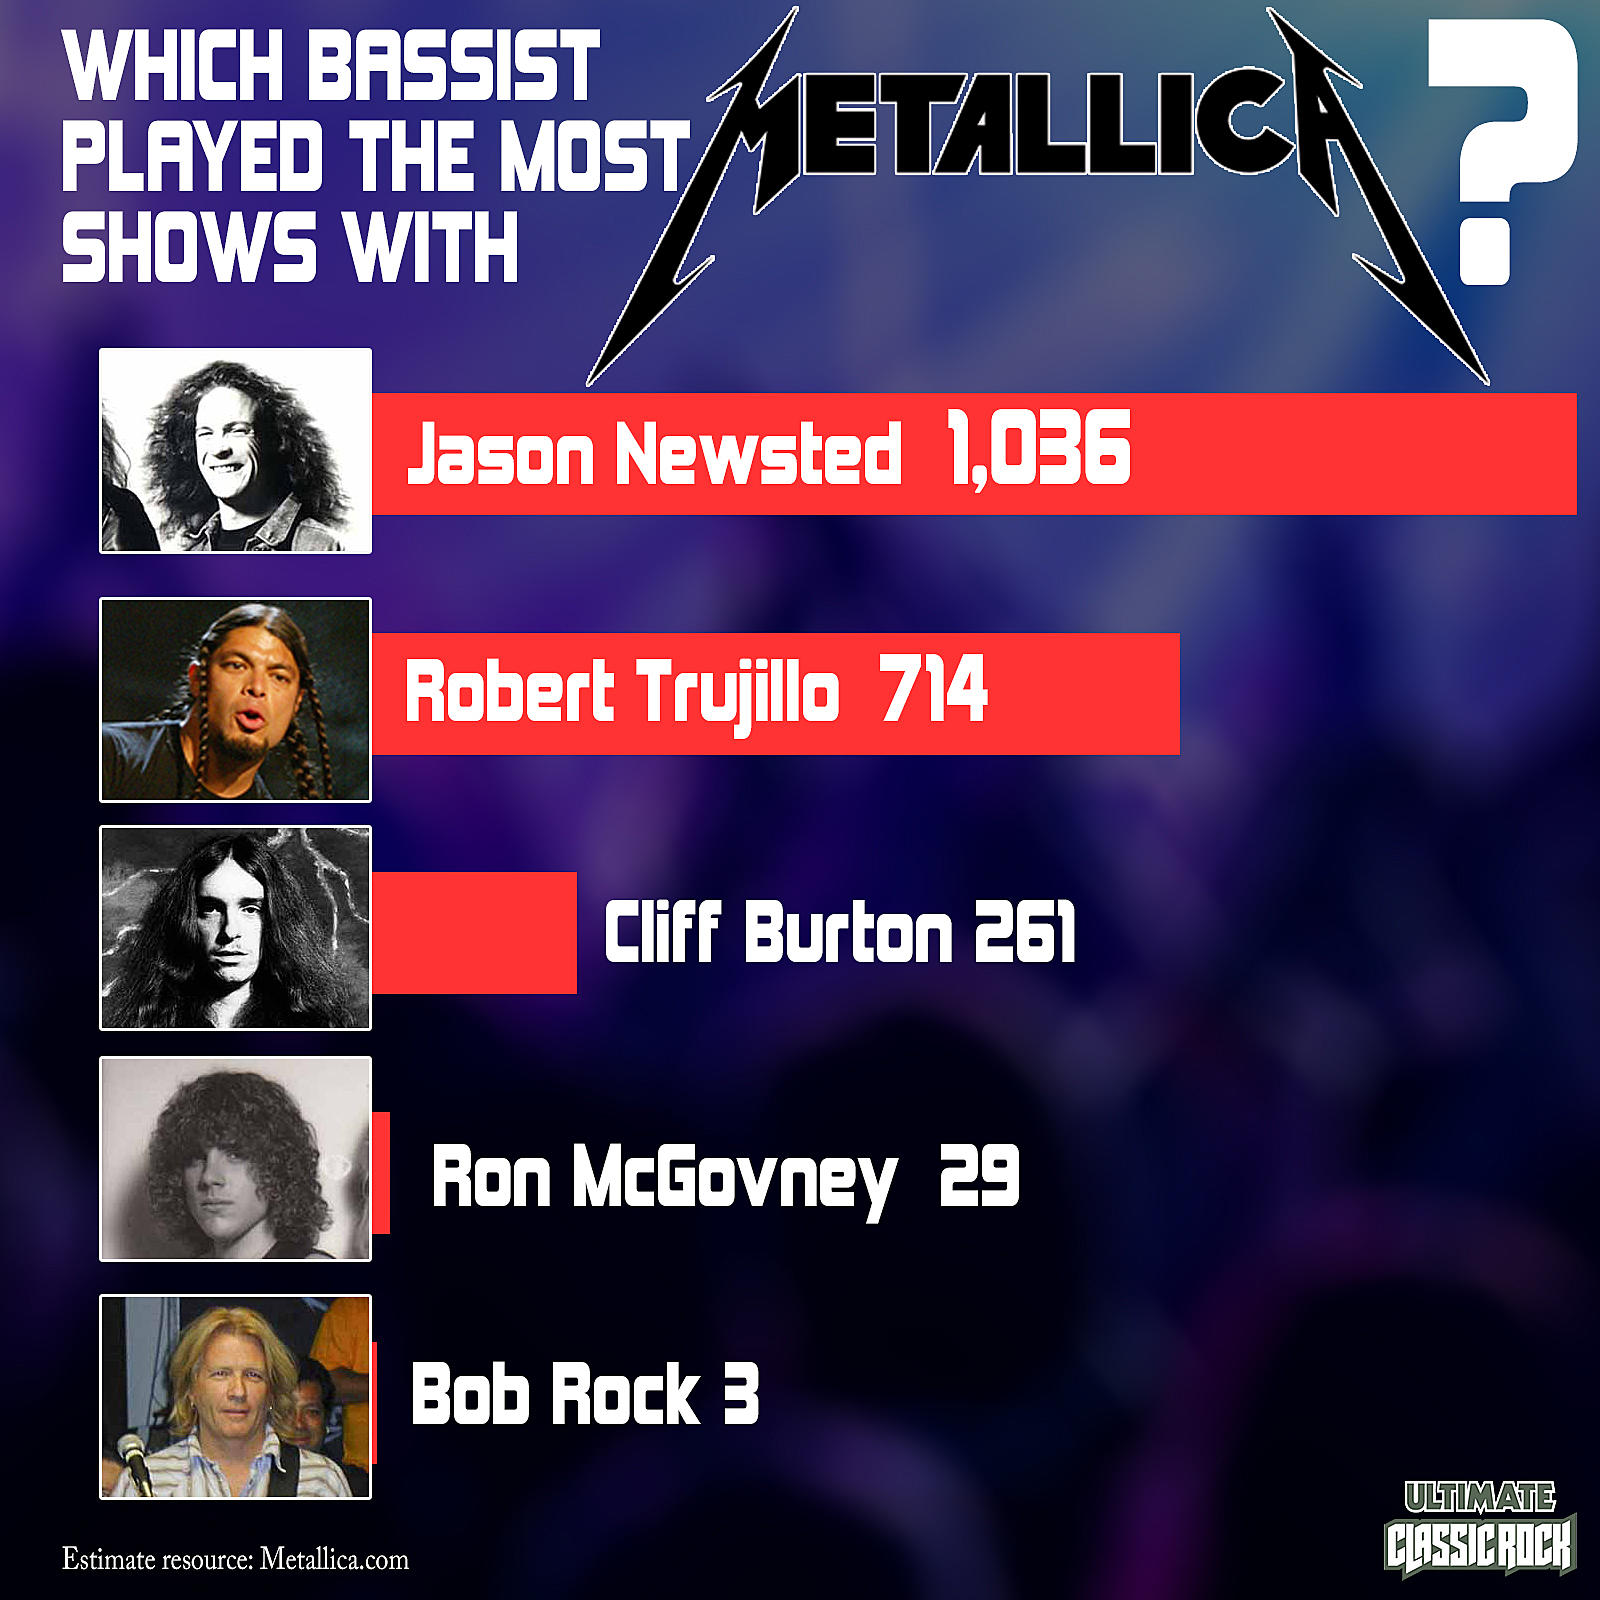 Which Metallica Bassist Has Played the Most Shows?